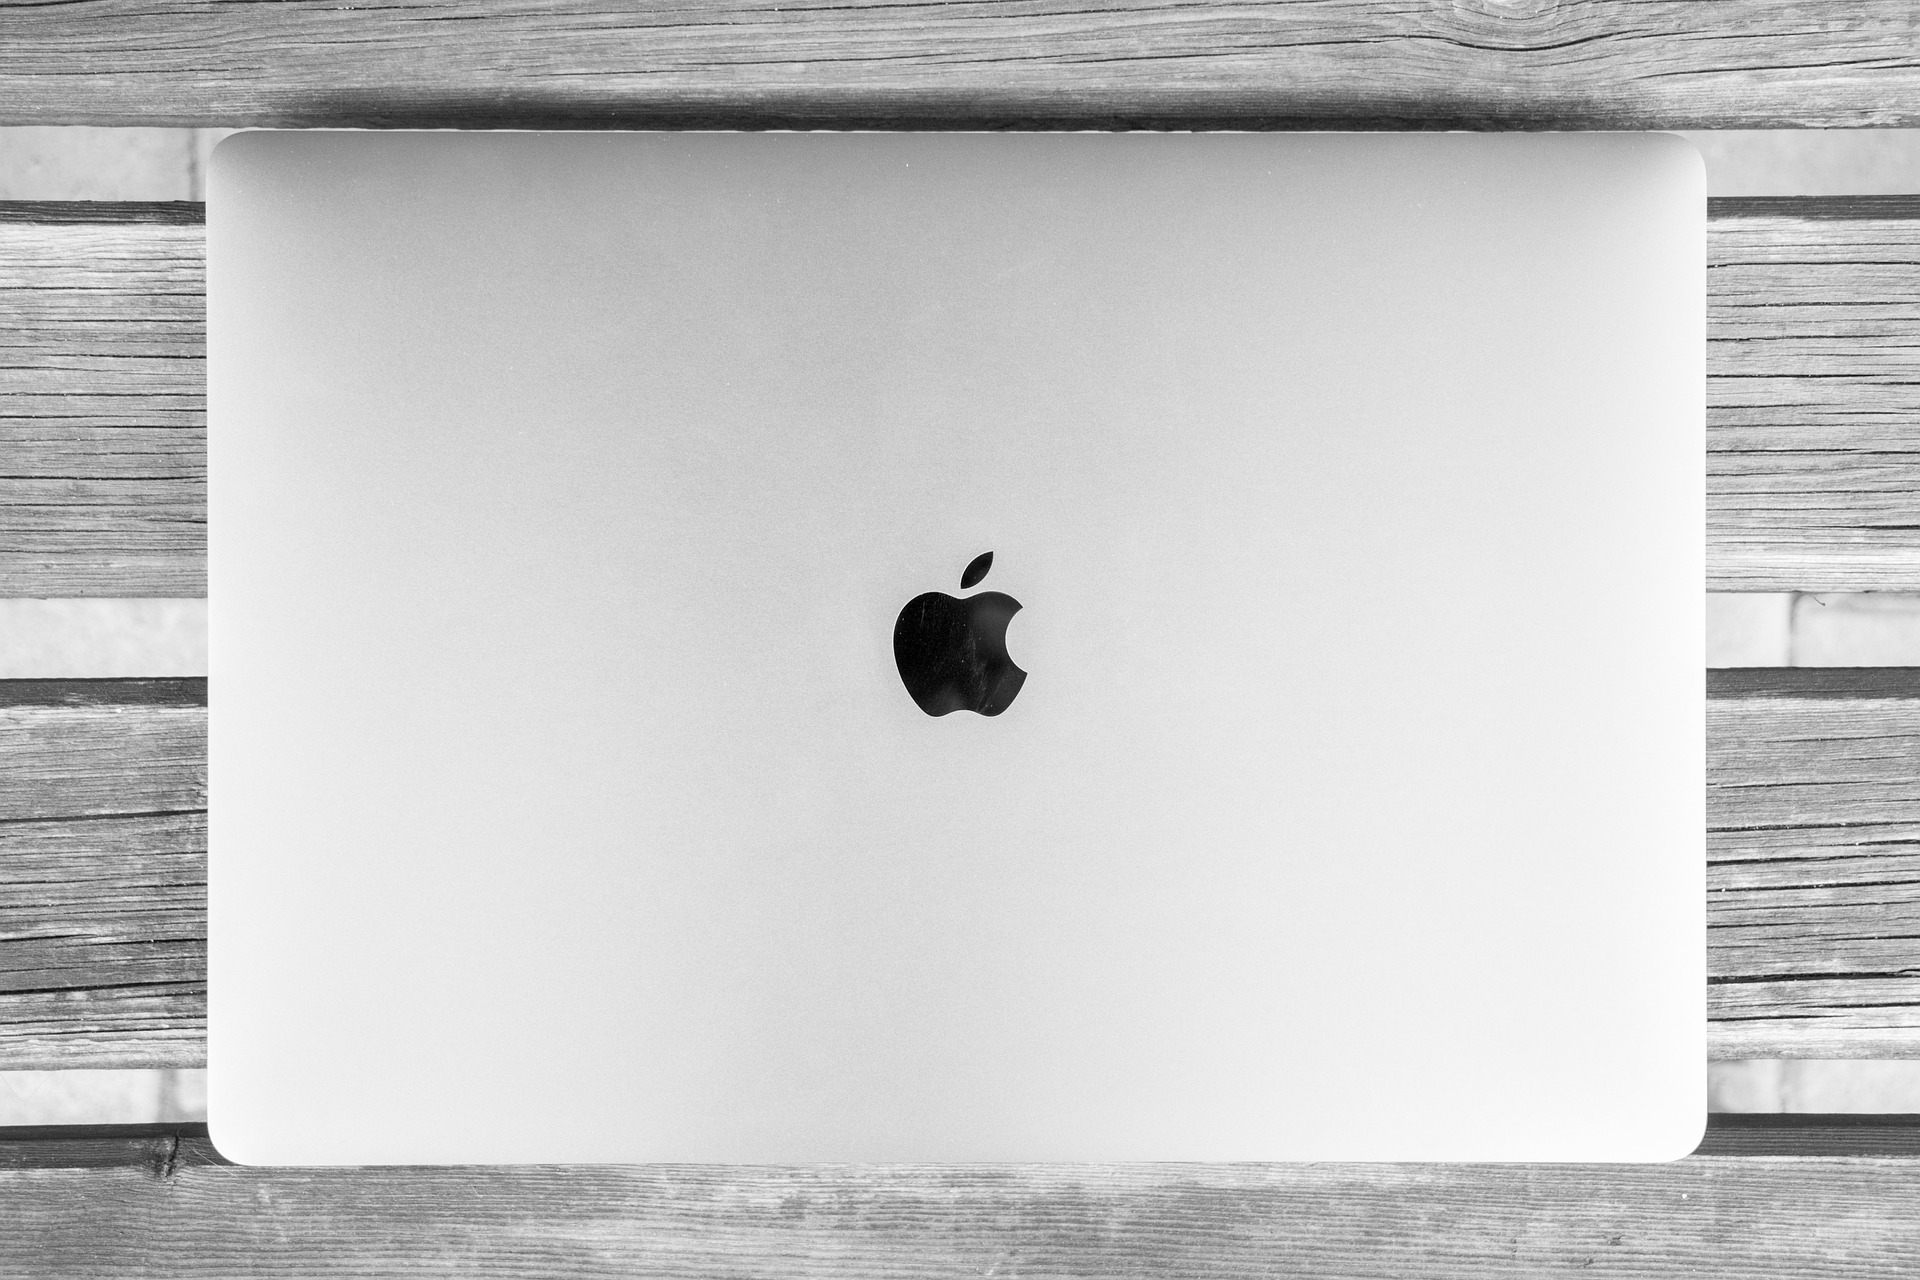 Apple branding on laptop